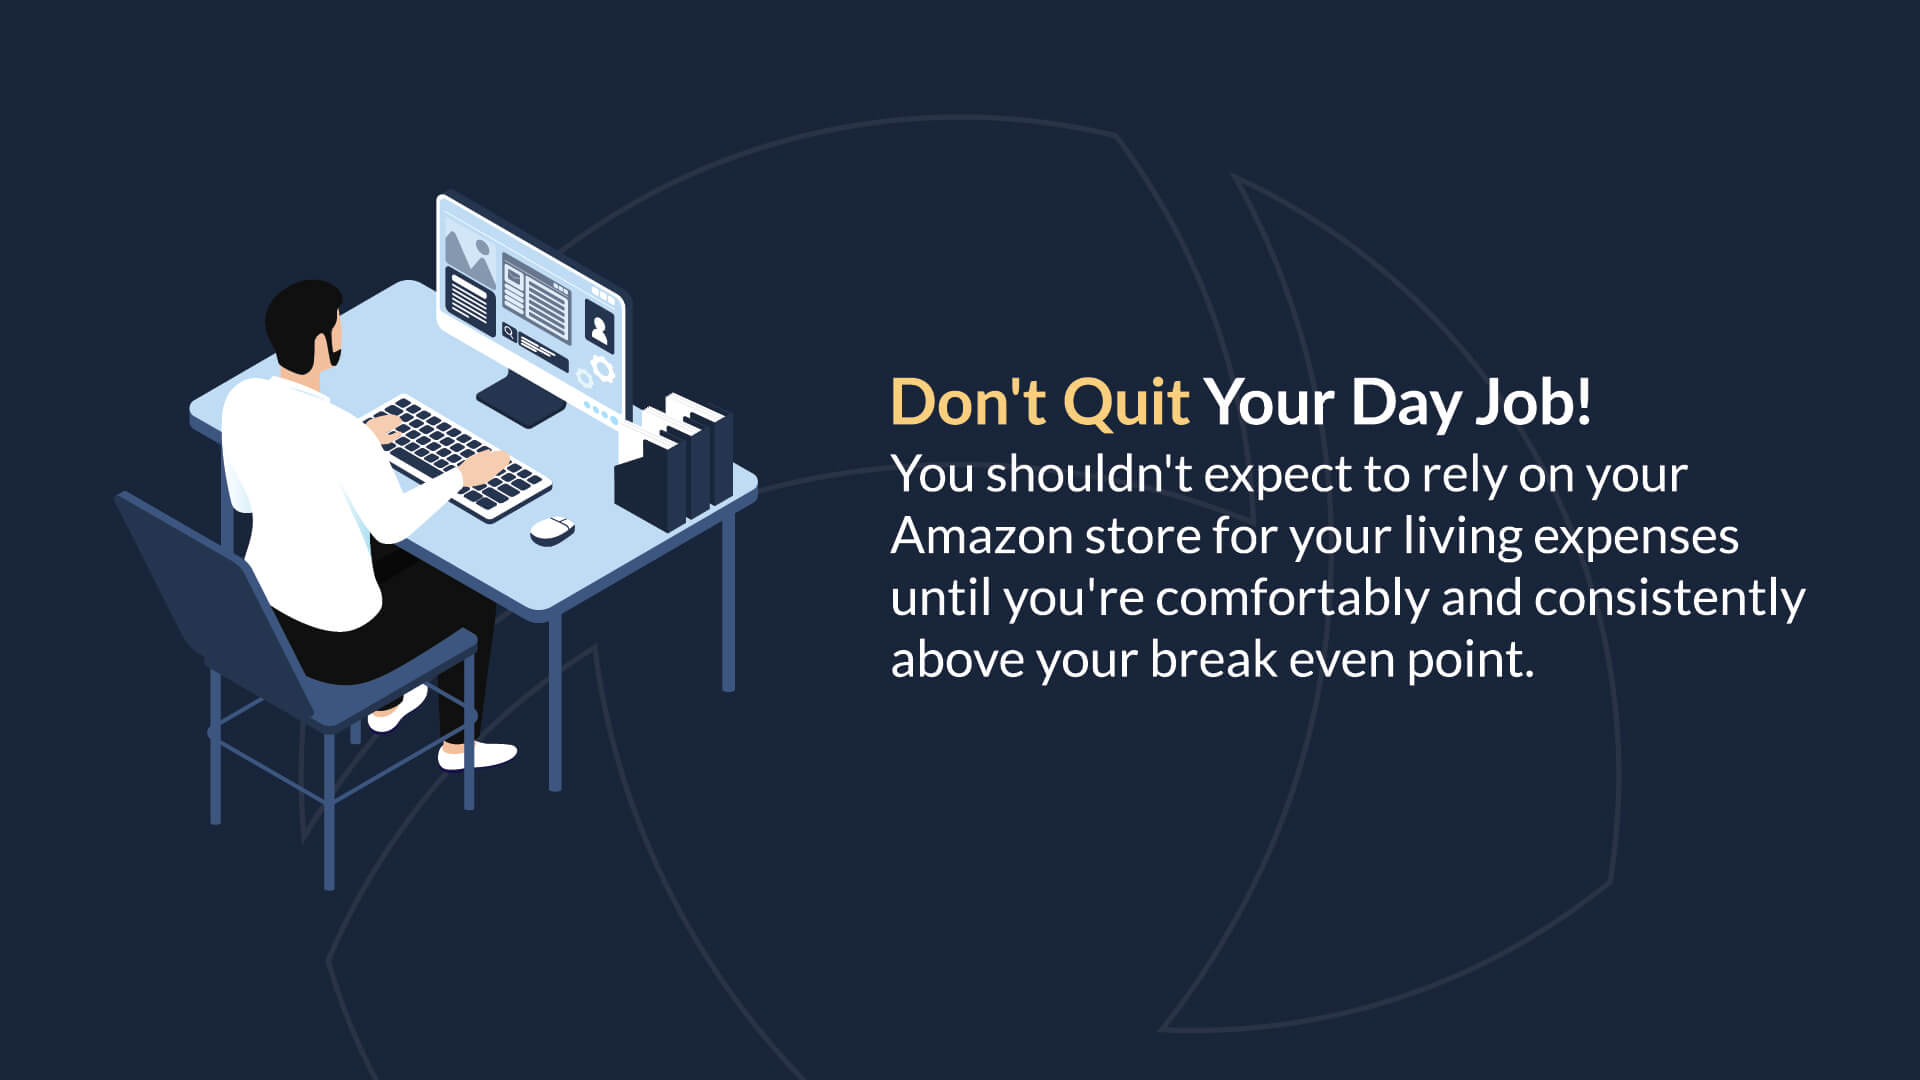 Don't Quit Your Day Job! You shouldn't expect to rely on your Amazon store for your living expenses until you're comfortably and consistently above your break even point.